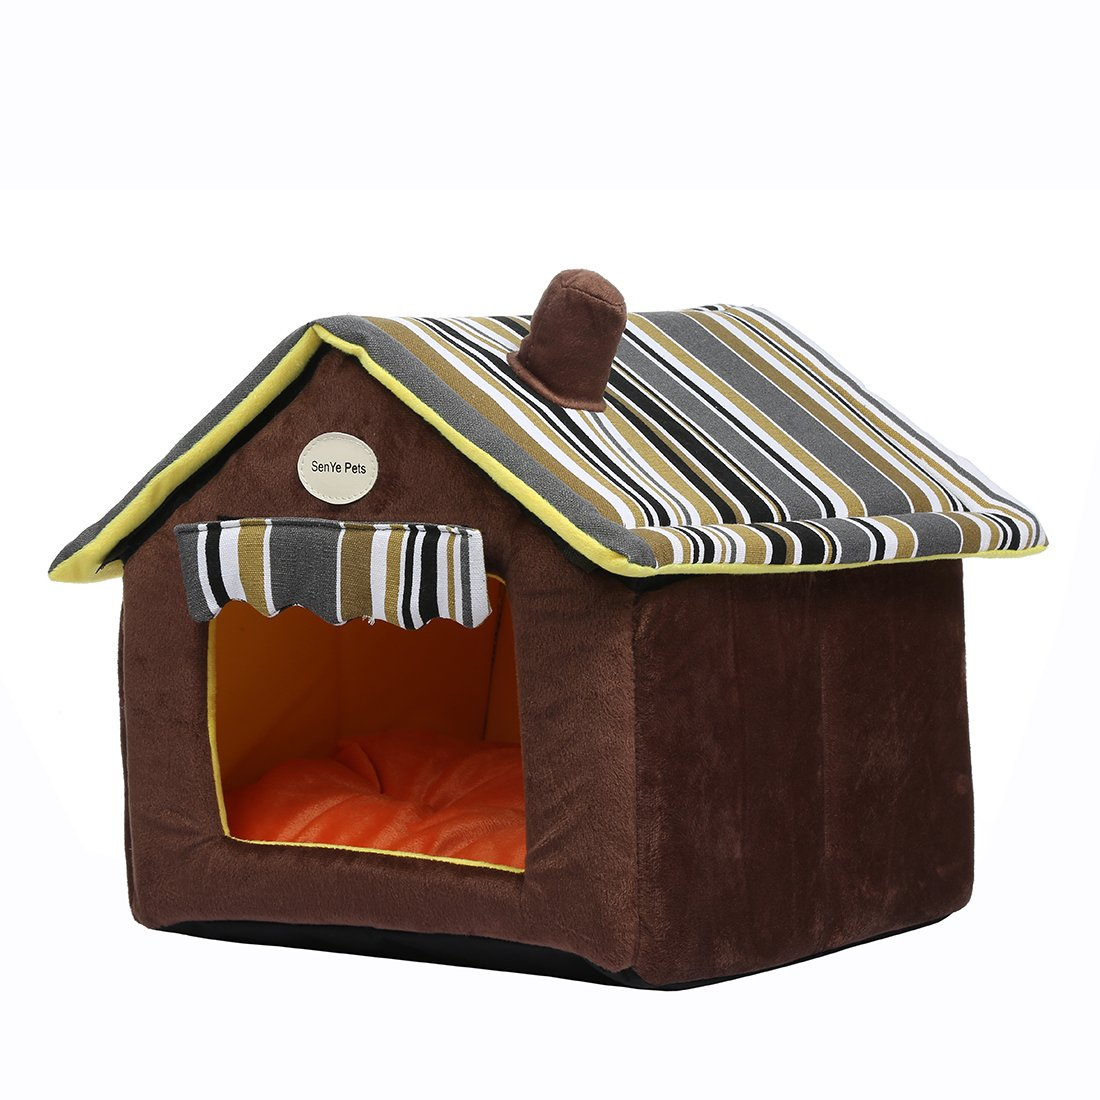 SENYEPETS Soft Indoor Dog Houses Pets Sponge Material Portable and Great for Transportation and Short outings (XL, Coffee) by SENYEPETS